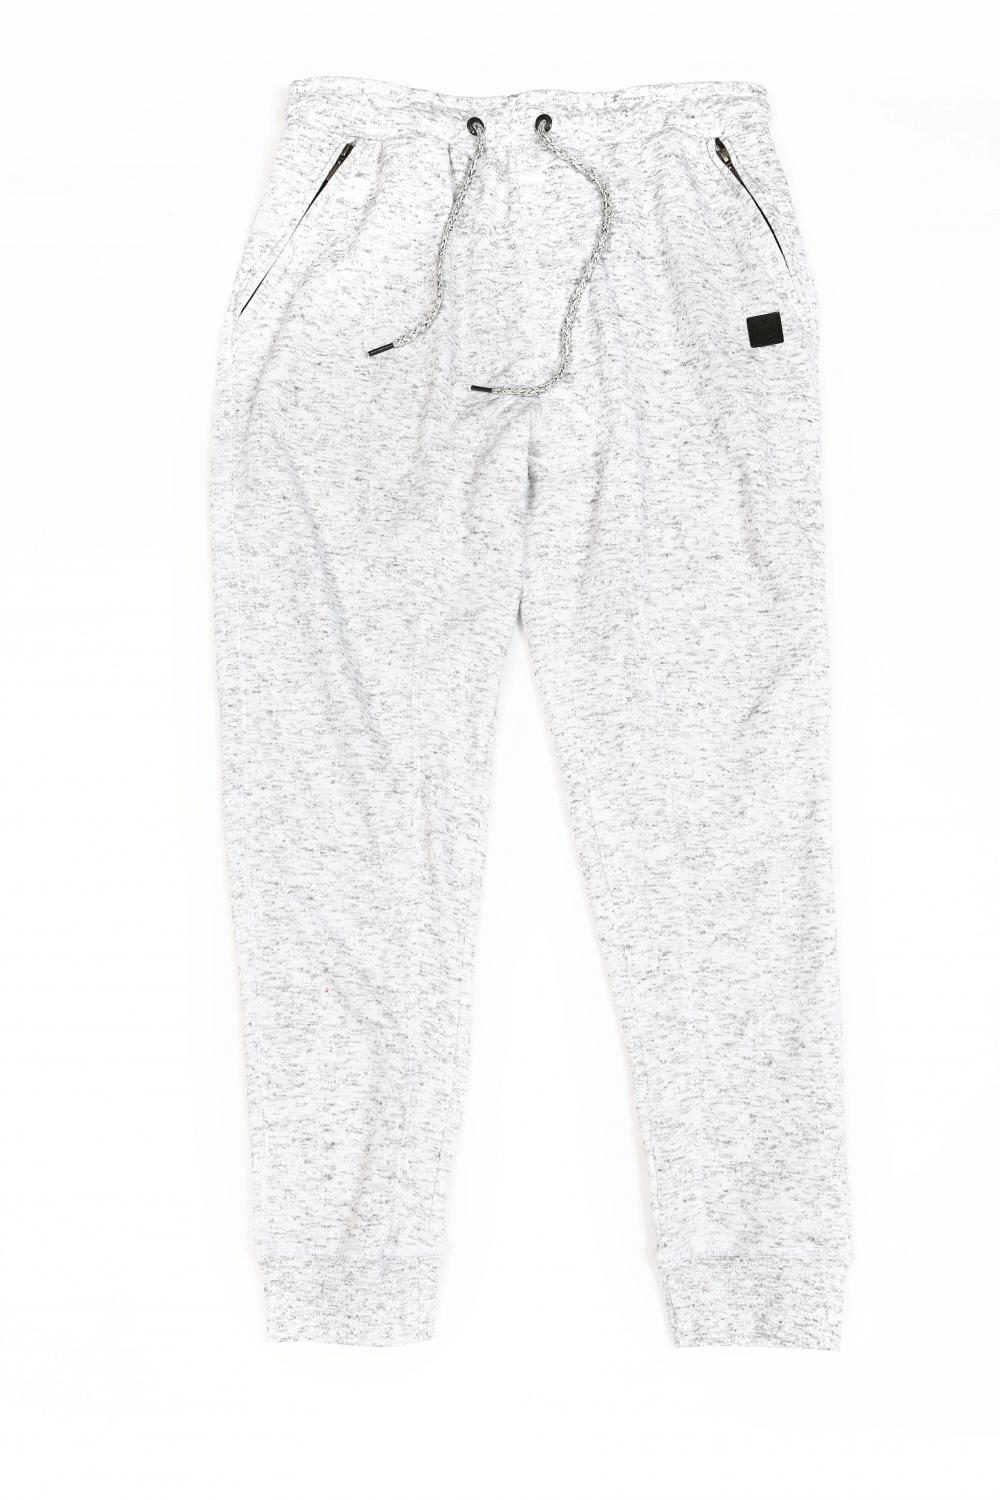 Men's knit fleece pants